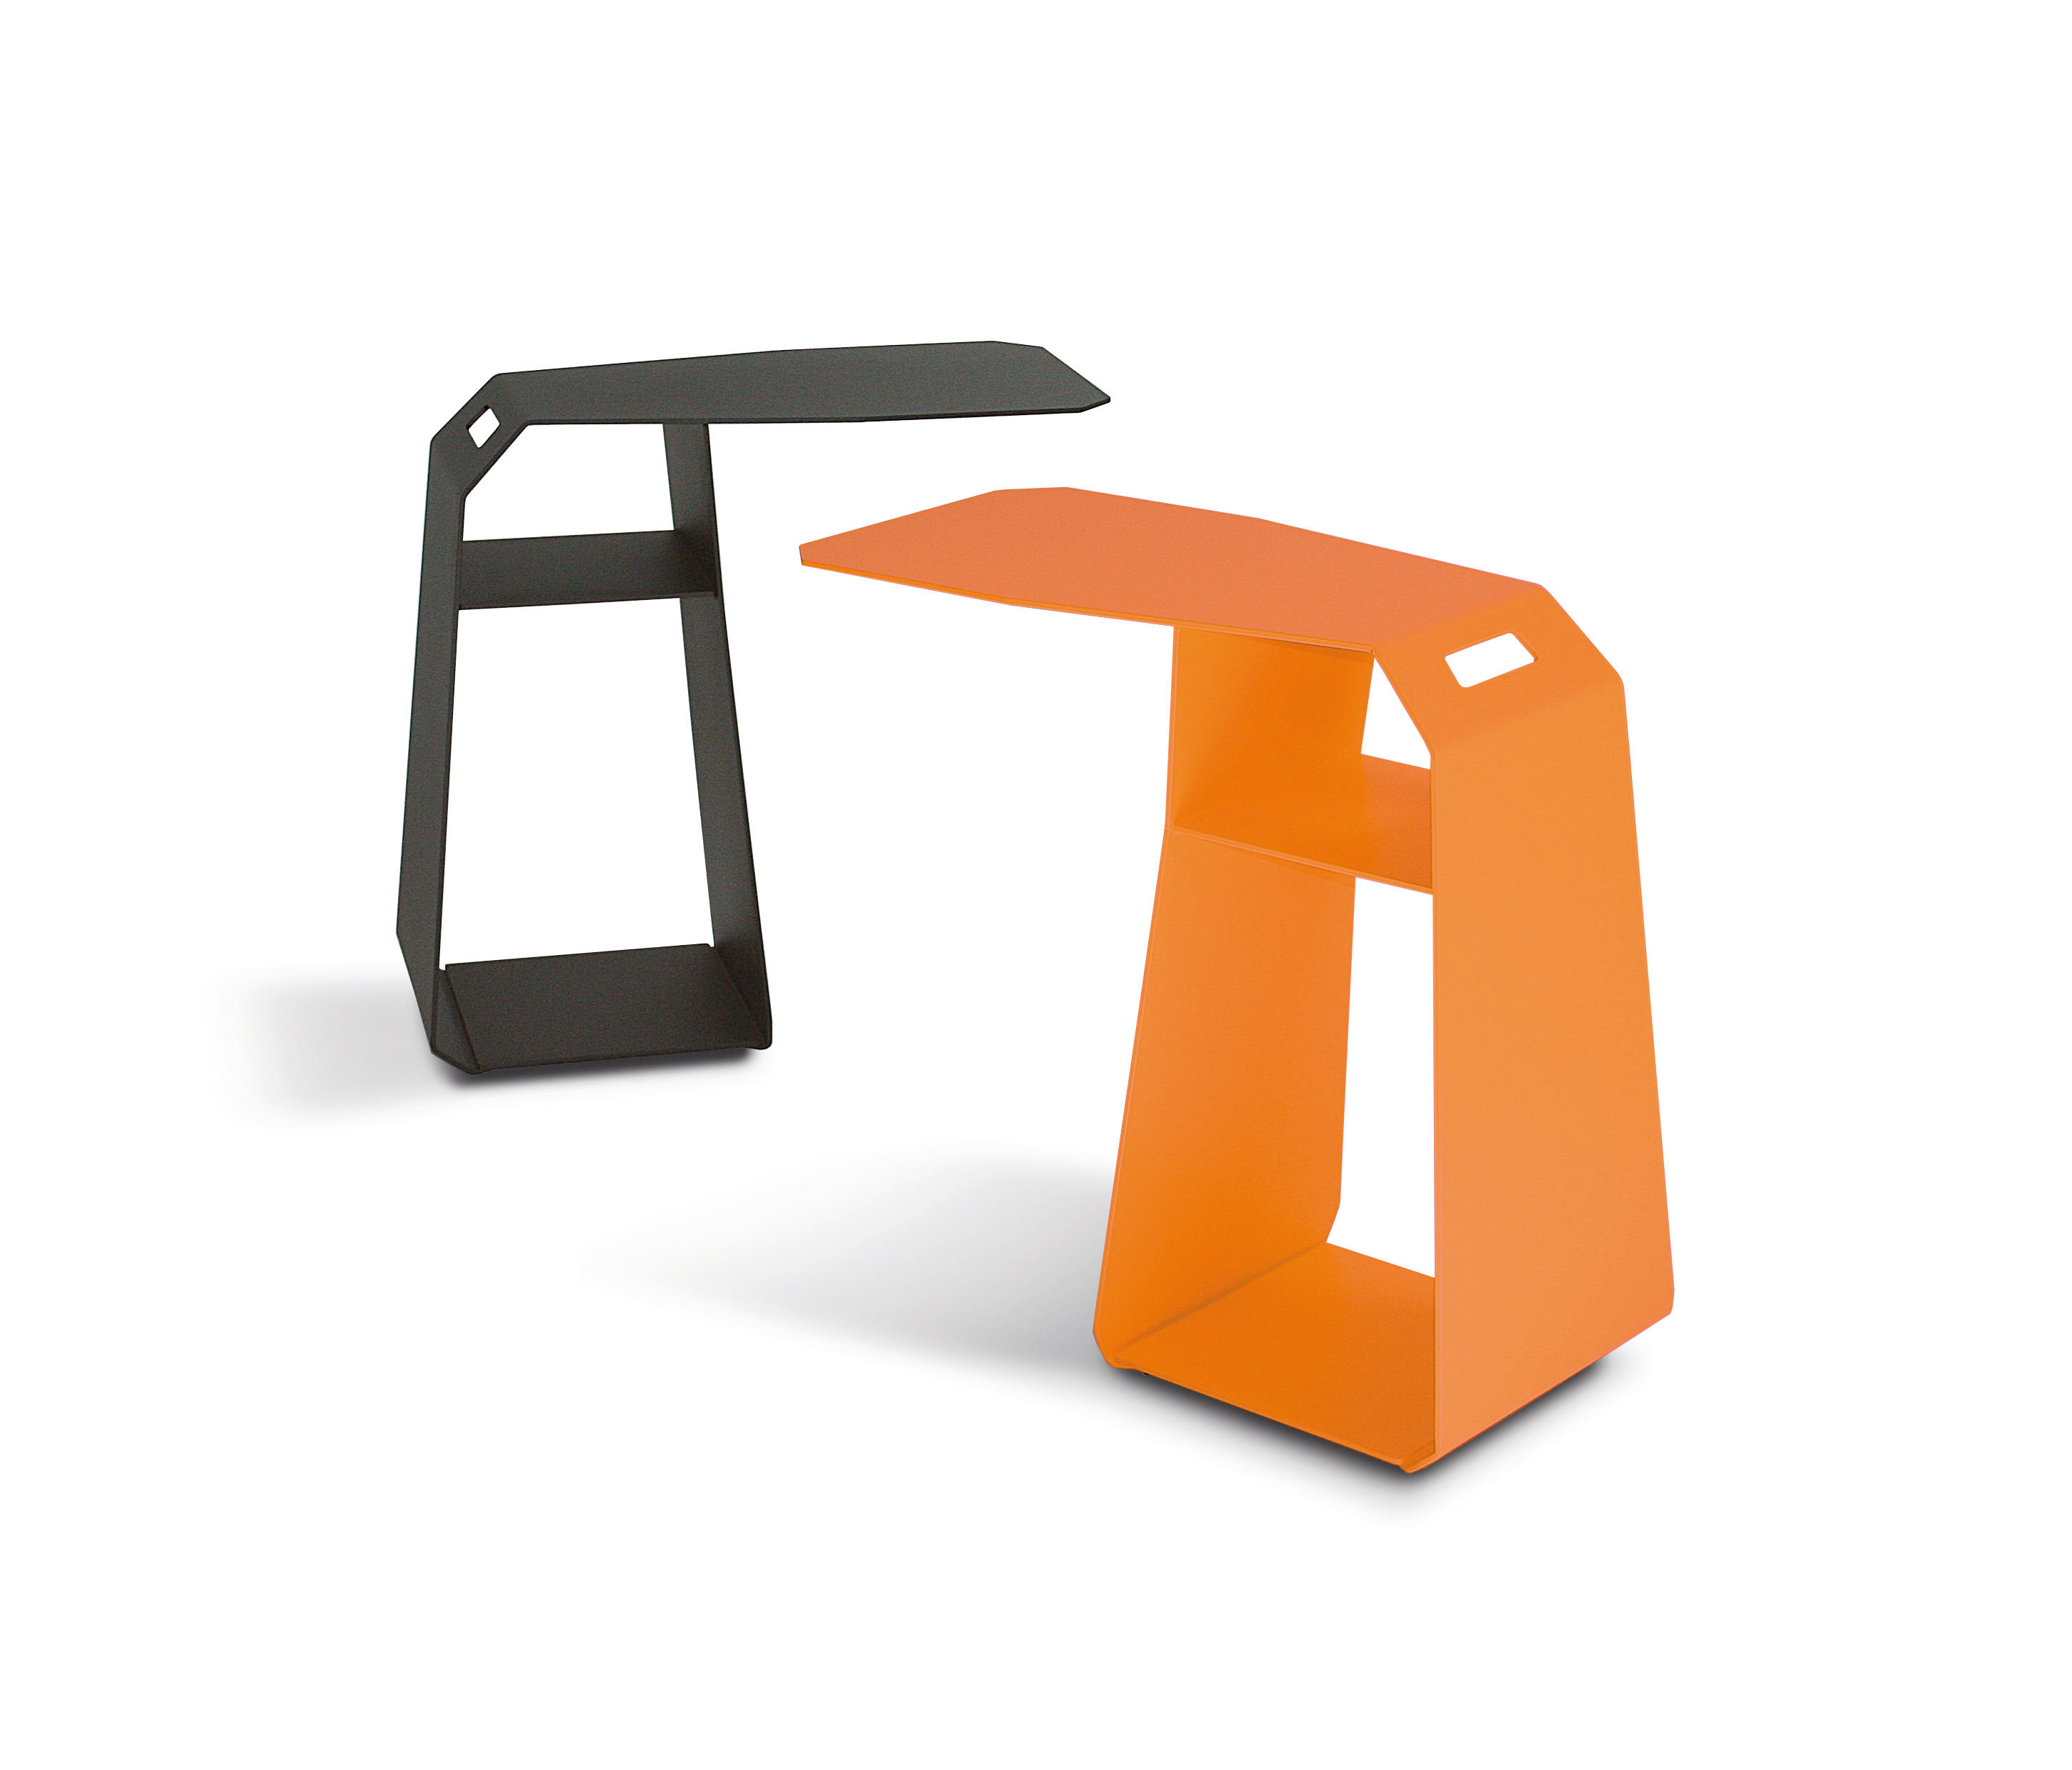 Cendrier Exterieur Orange Unit Table Dappoint Tables D 39appoint De Miiing Architonic